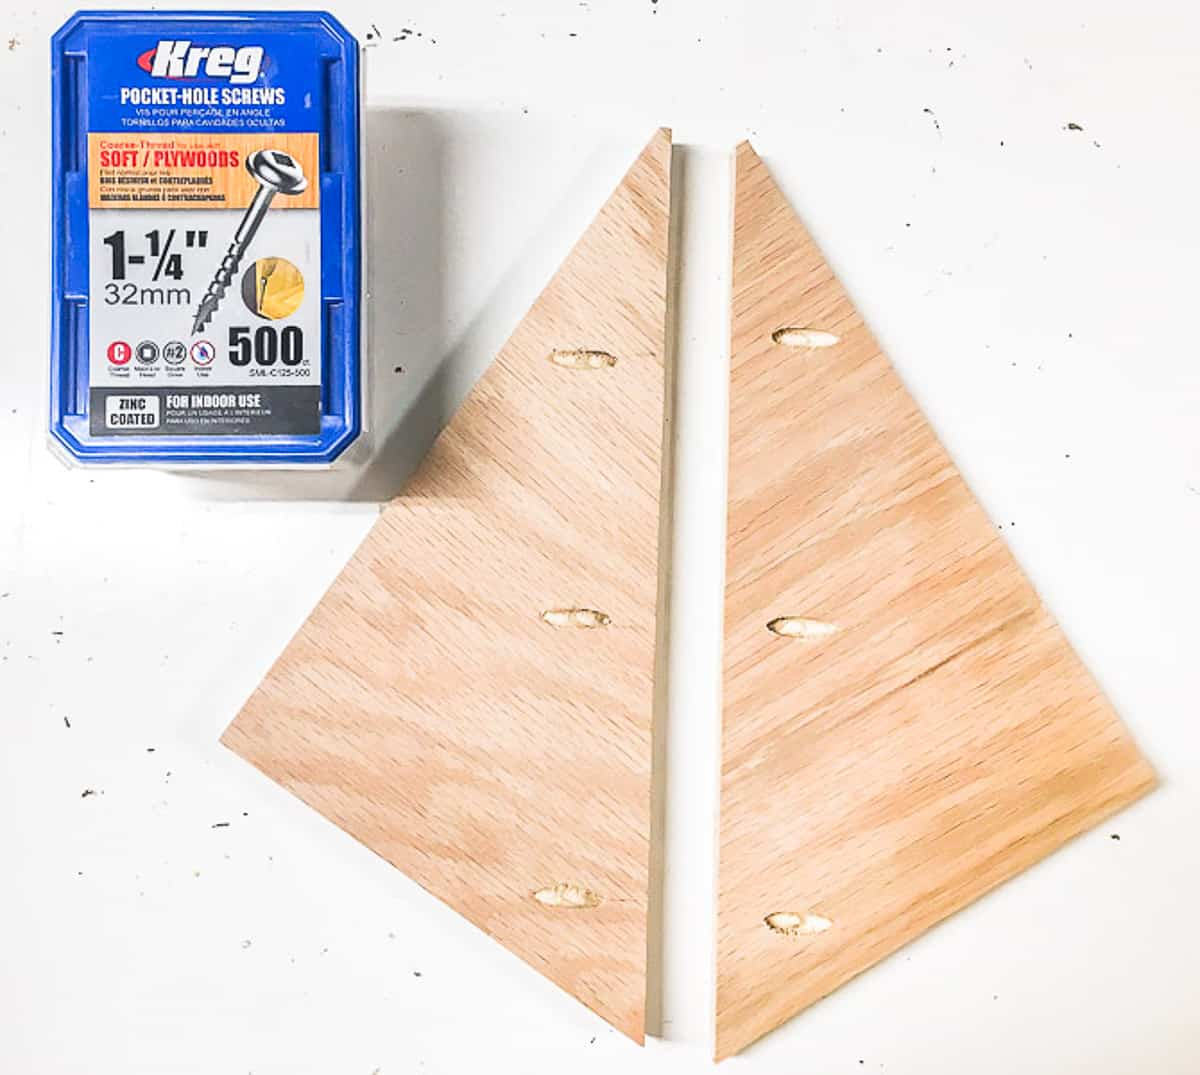 pieces for circular saw storage rack with pocket holes down one side